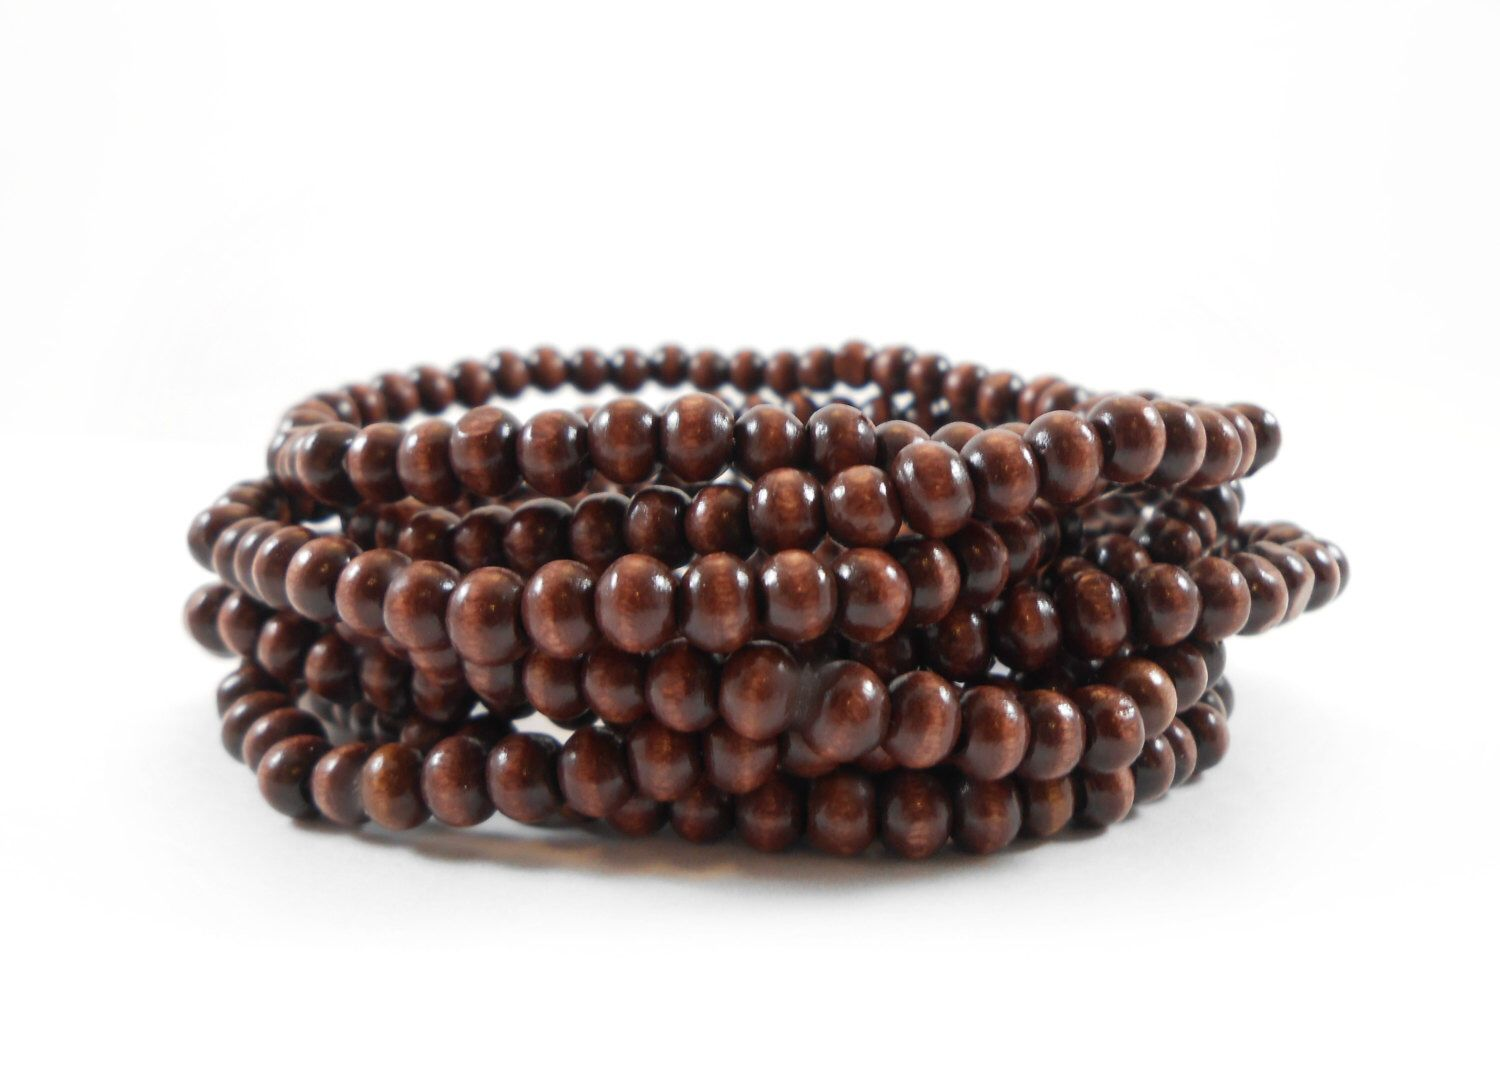 10+ Small wooden beads for jewelry making ideas in 2021